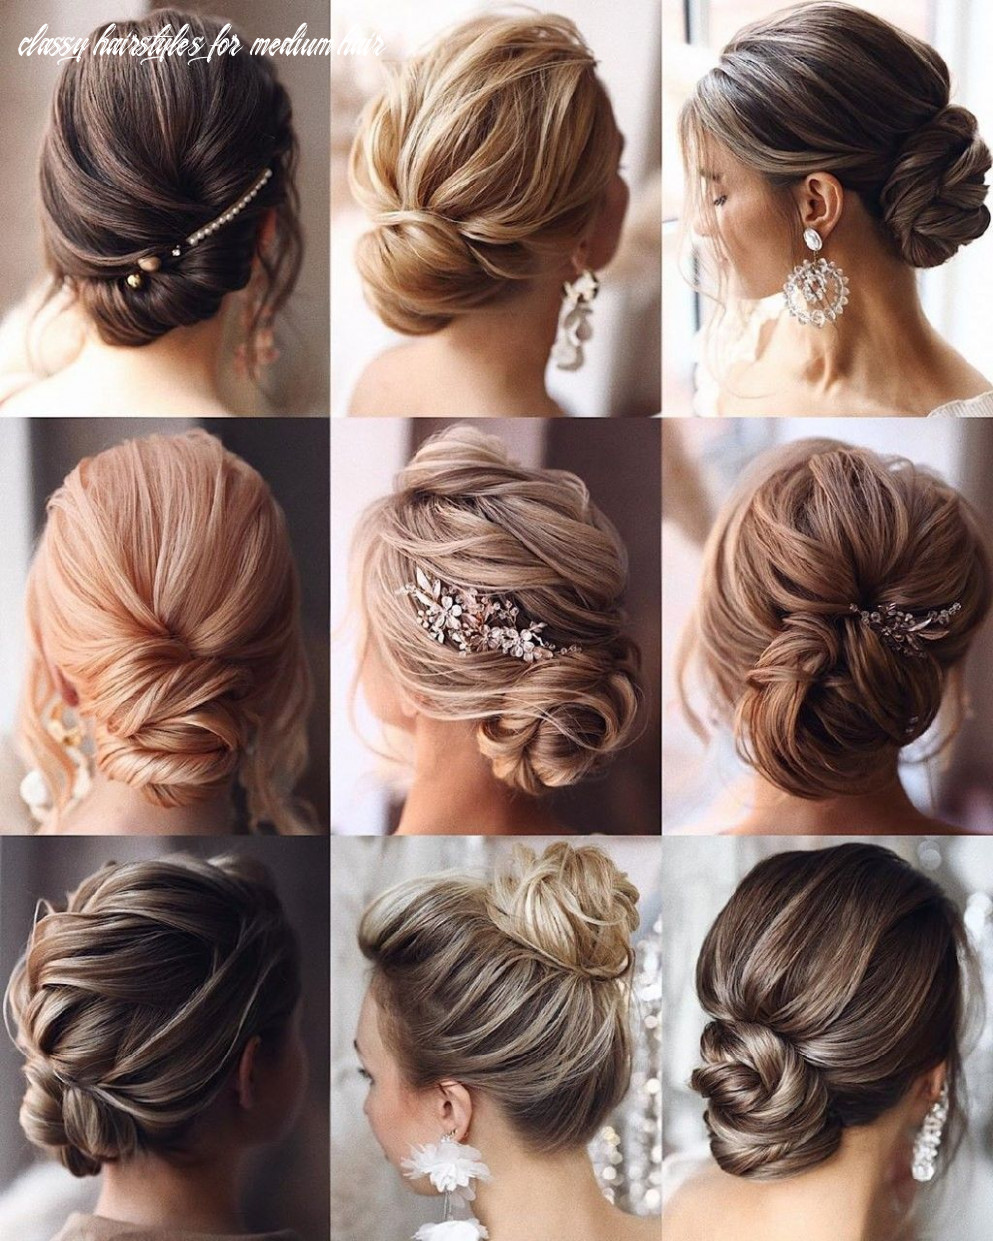 Classy and beautiful hairstyle collection picture | headpiece